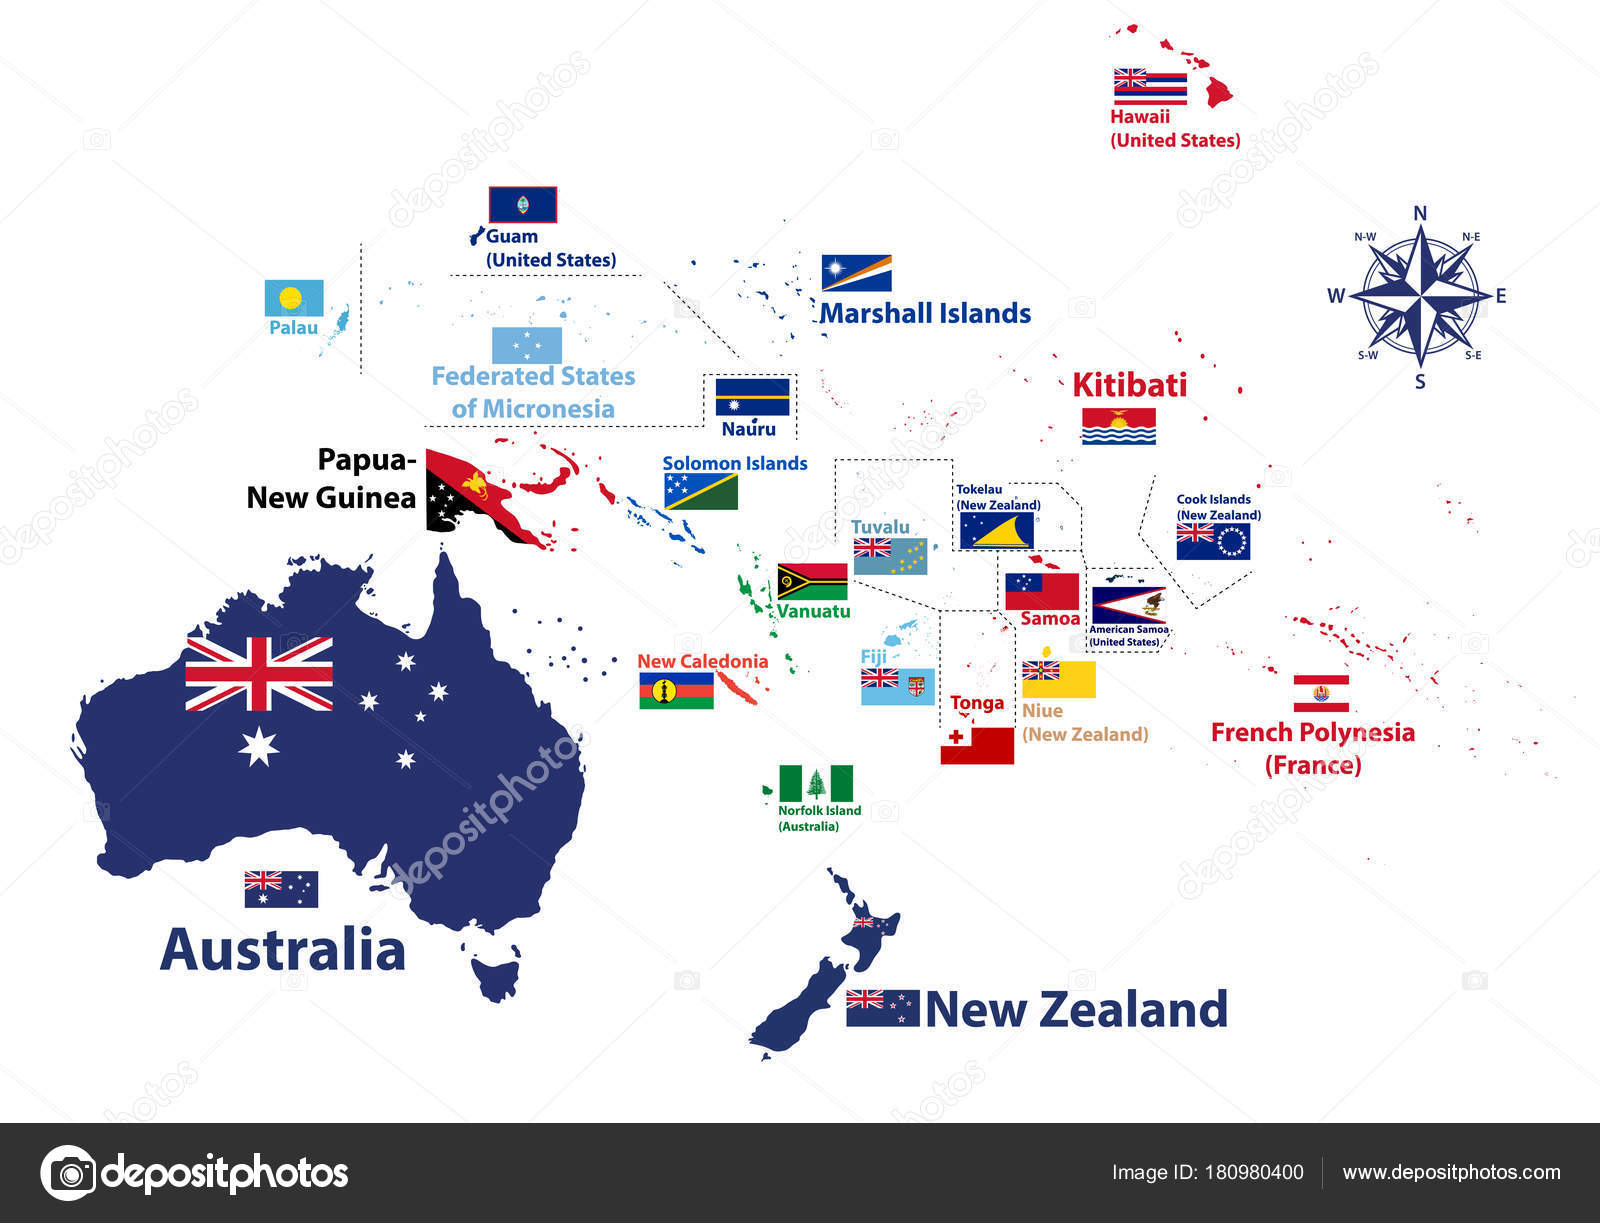 Australia oceania region vector high detailed map countries names australia and oceania region vector high detailed map with countries names and national flags vector by jktu21 gumiabroncs Gallery